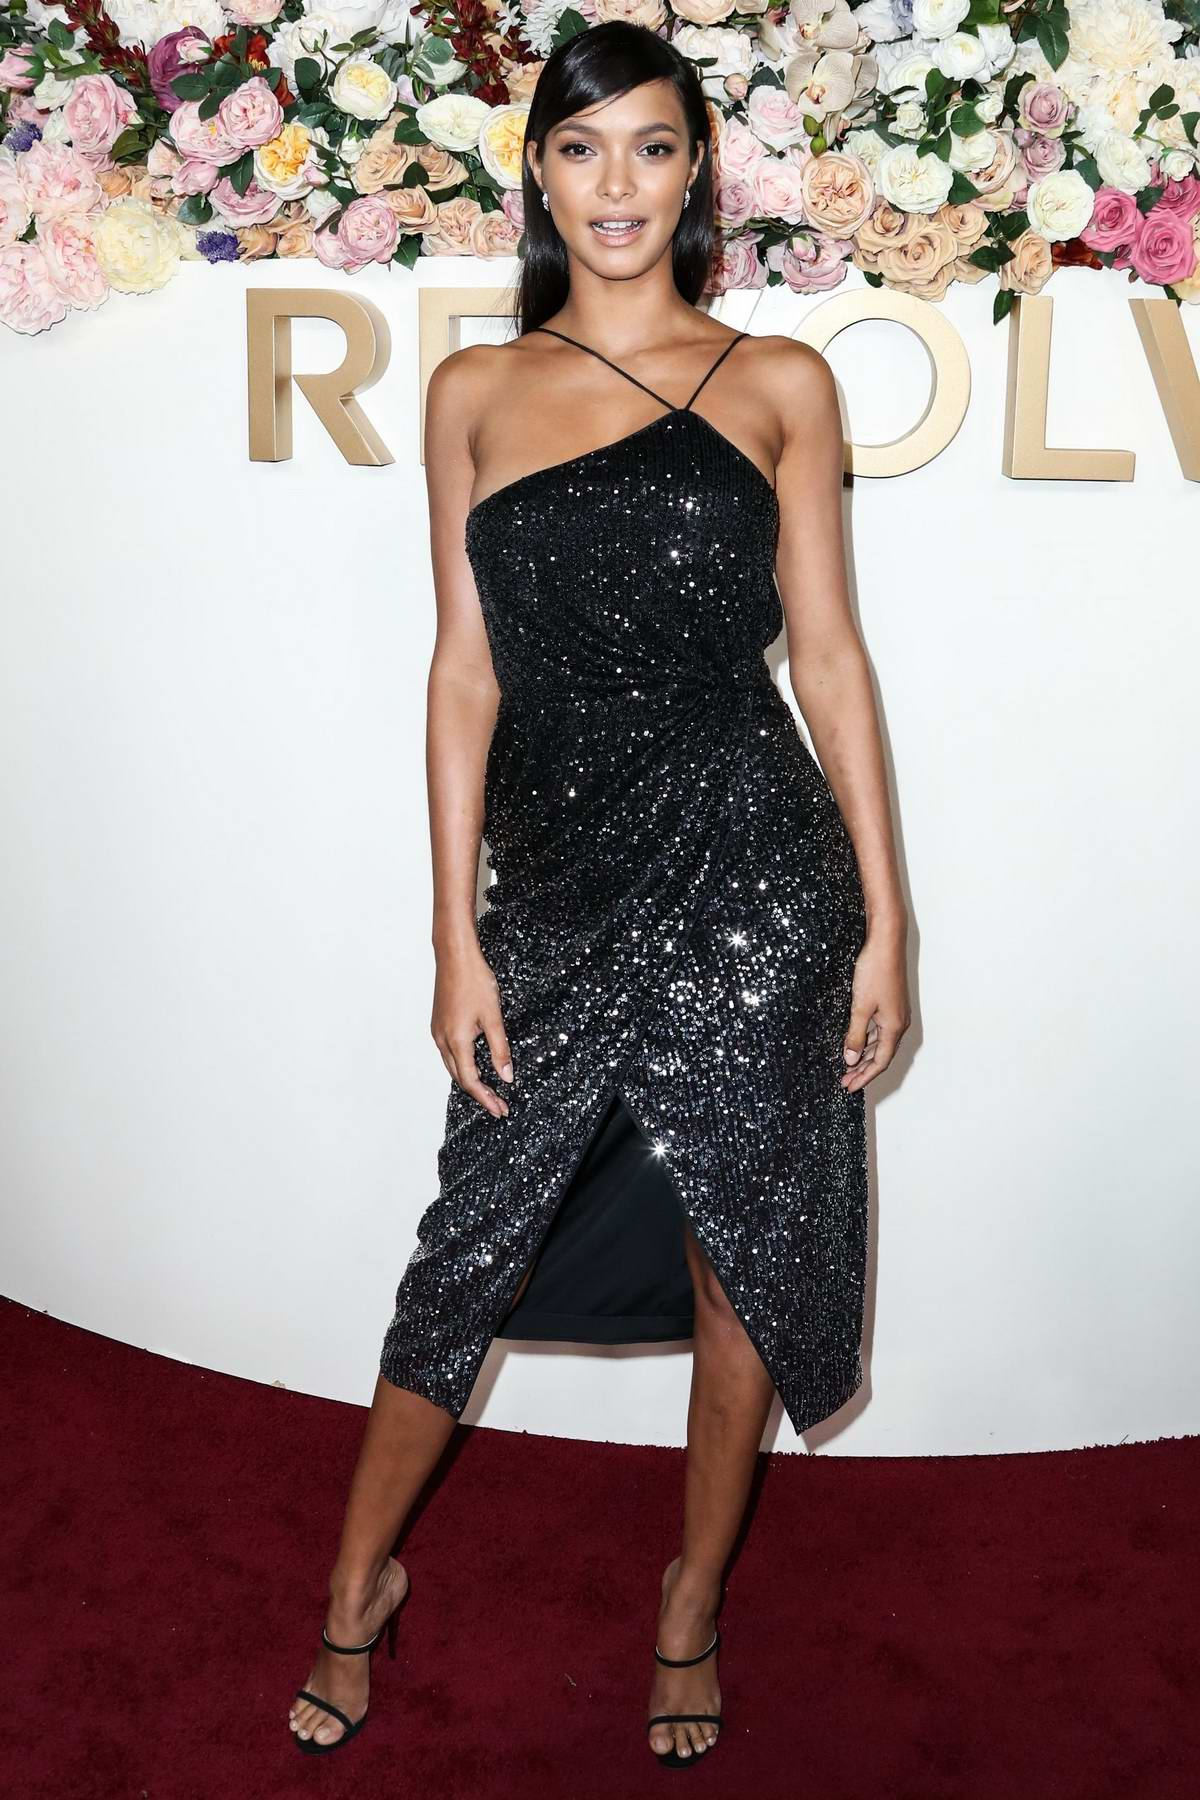 Lais Ribeiro attends the 3rd Annual REVOLVE Awards at Goya Studios in Hollywood, California